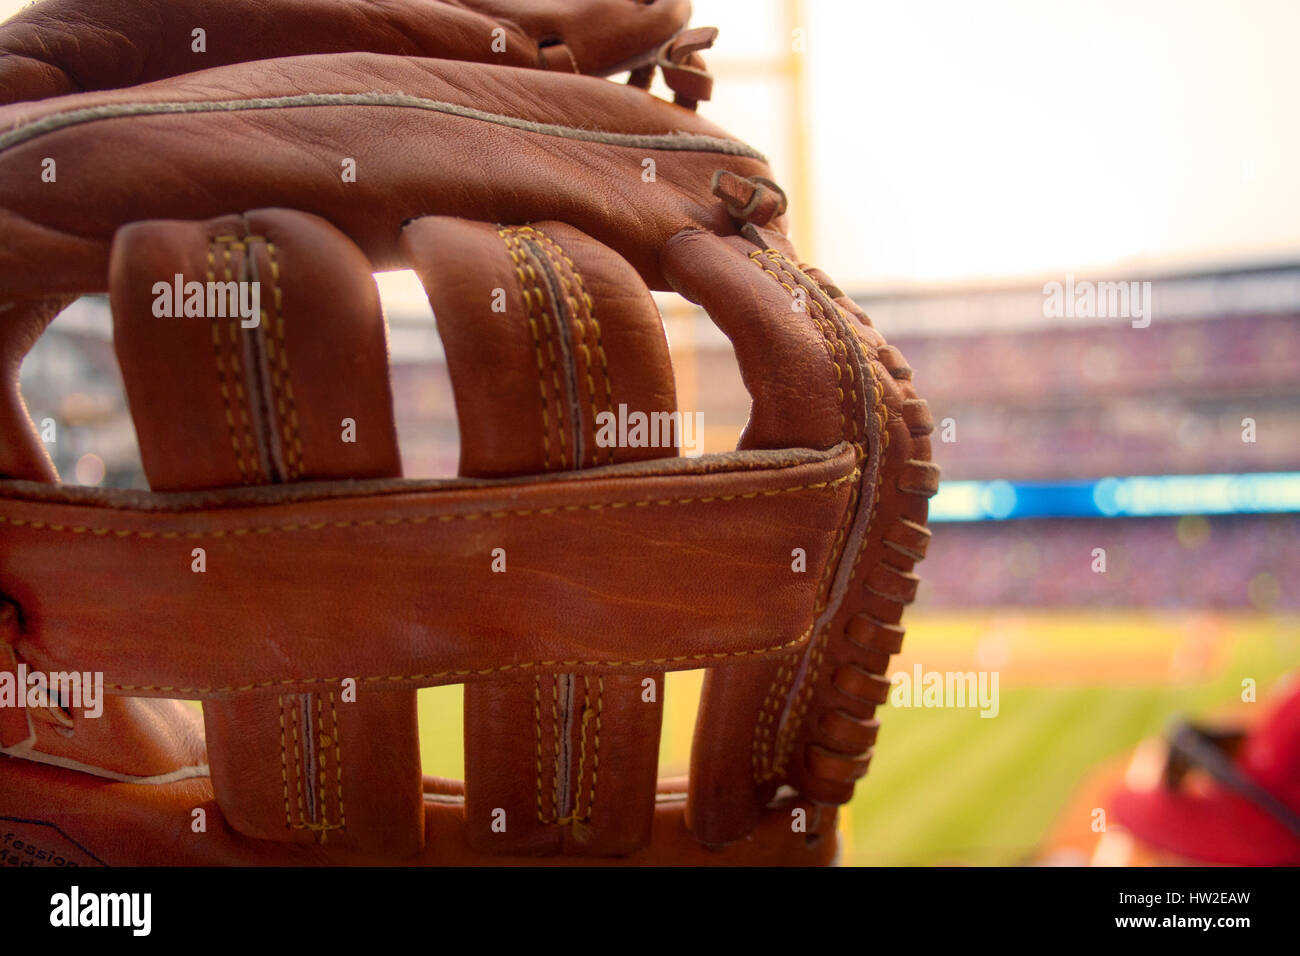 A baseball glove ready to catch a foul ball at a baseball game. - Stock Image